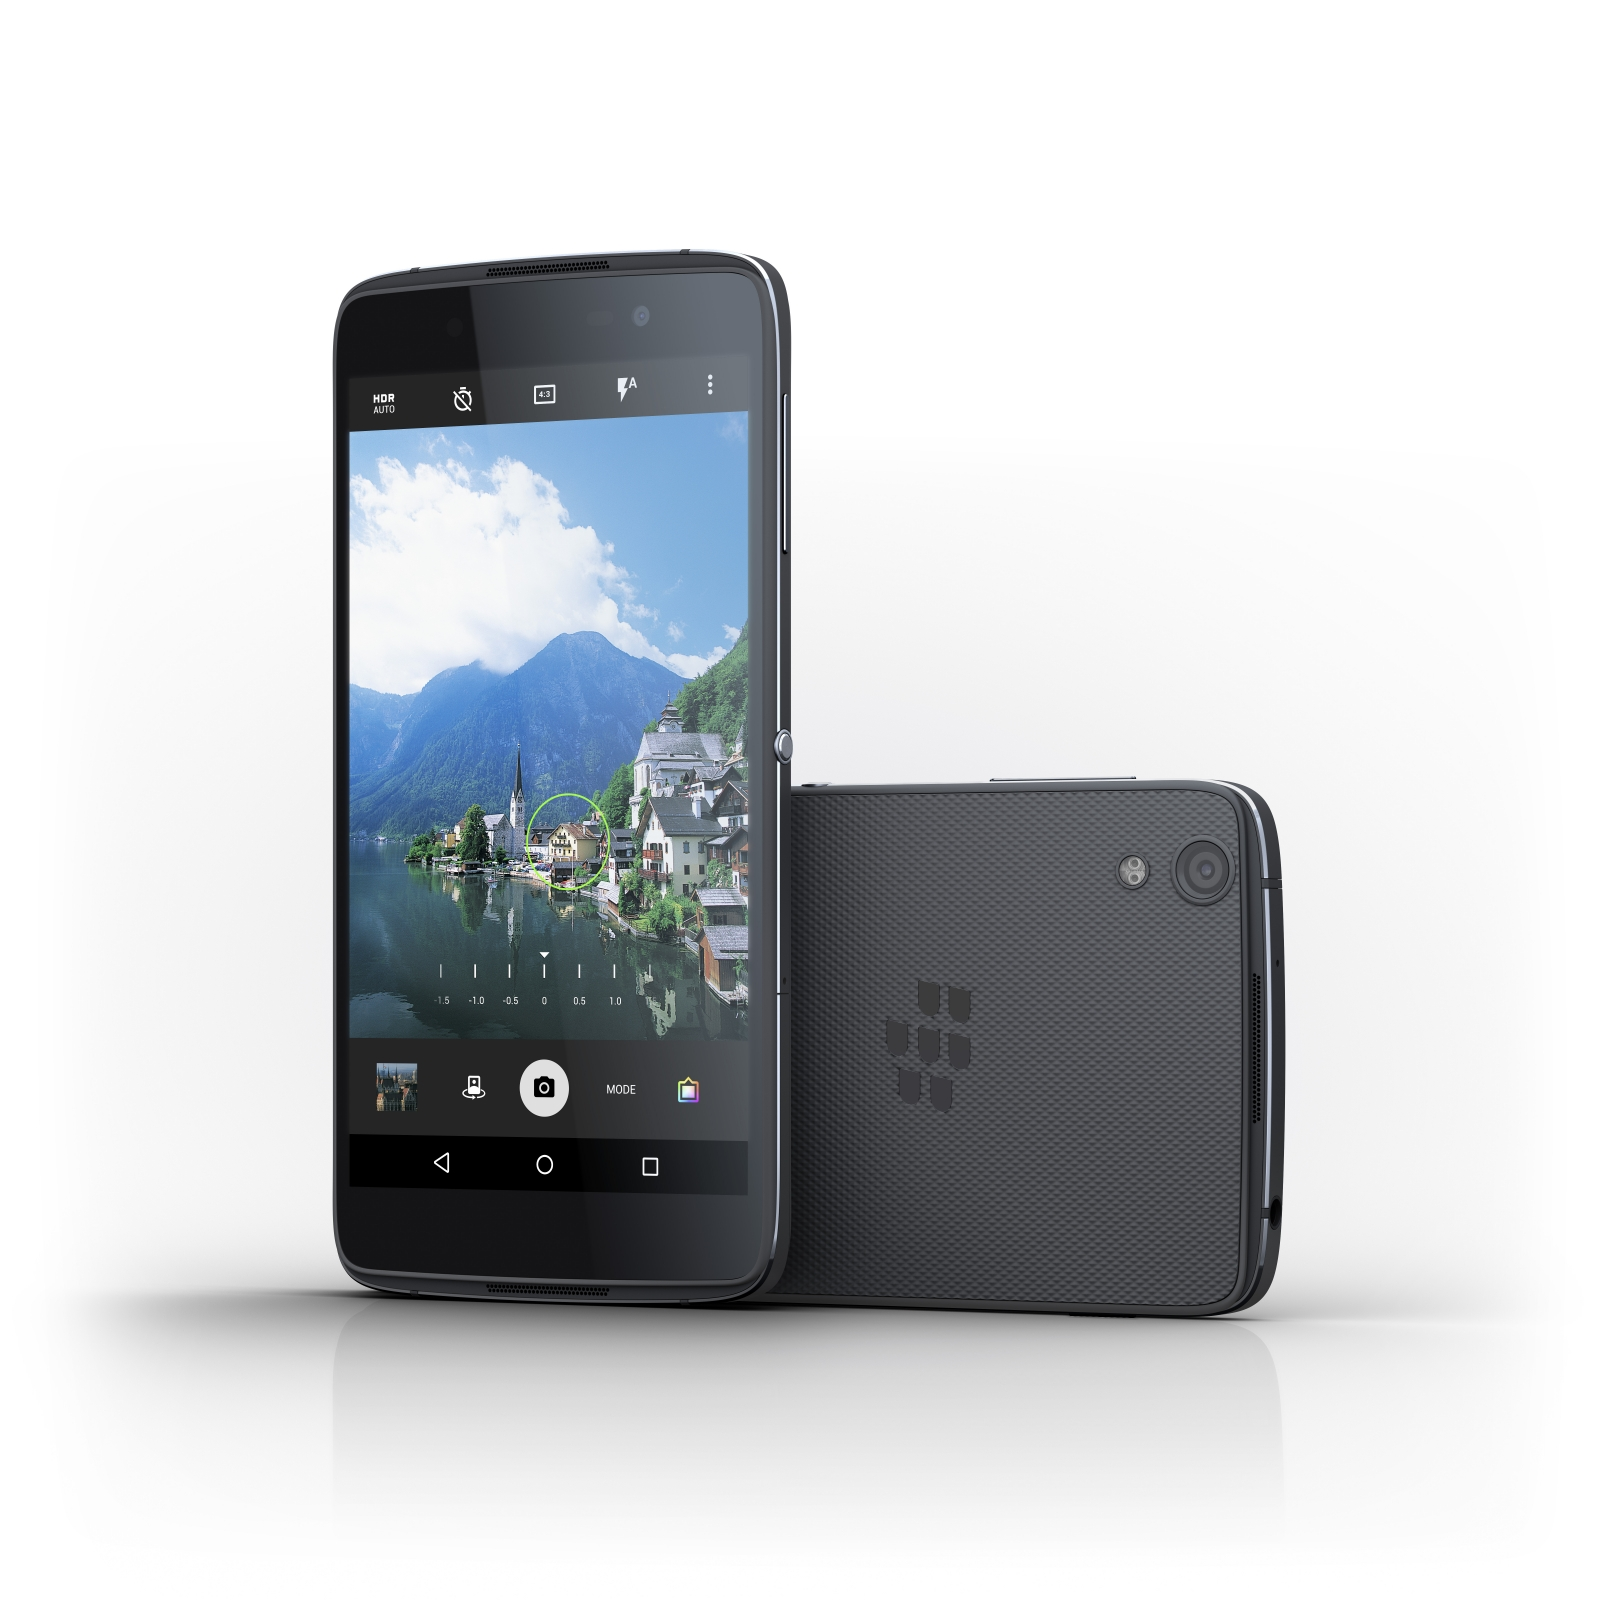 BlackBerry DTEK50 world's most secure Android smartphone